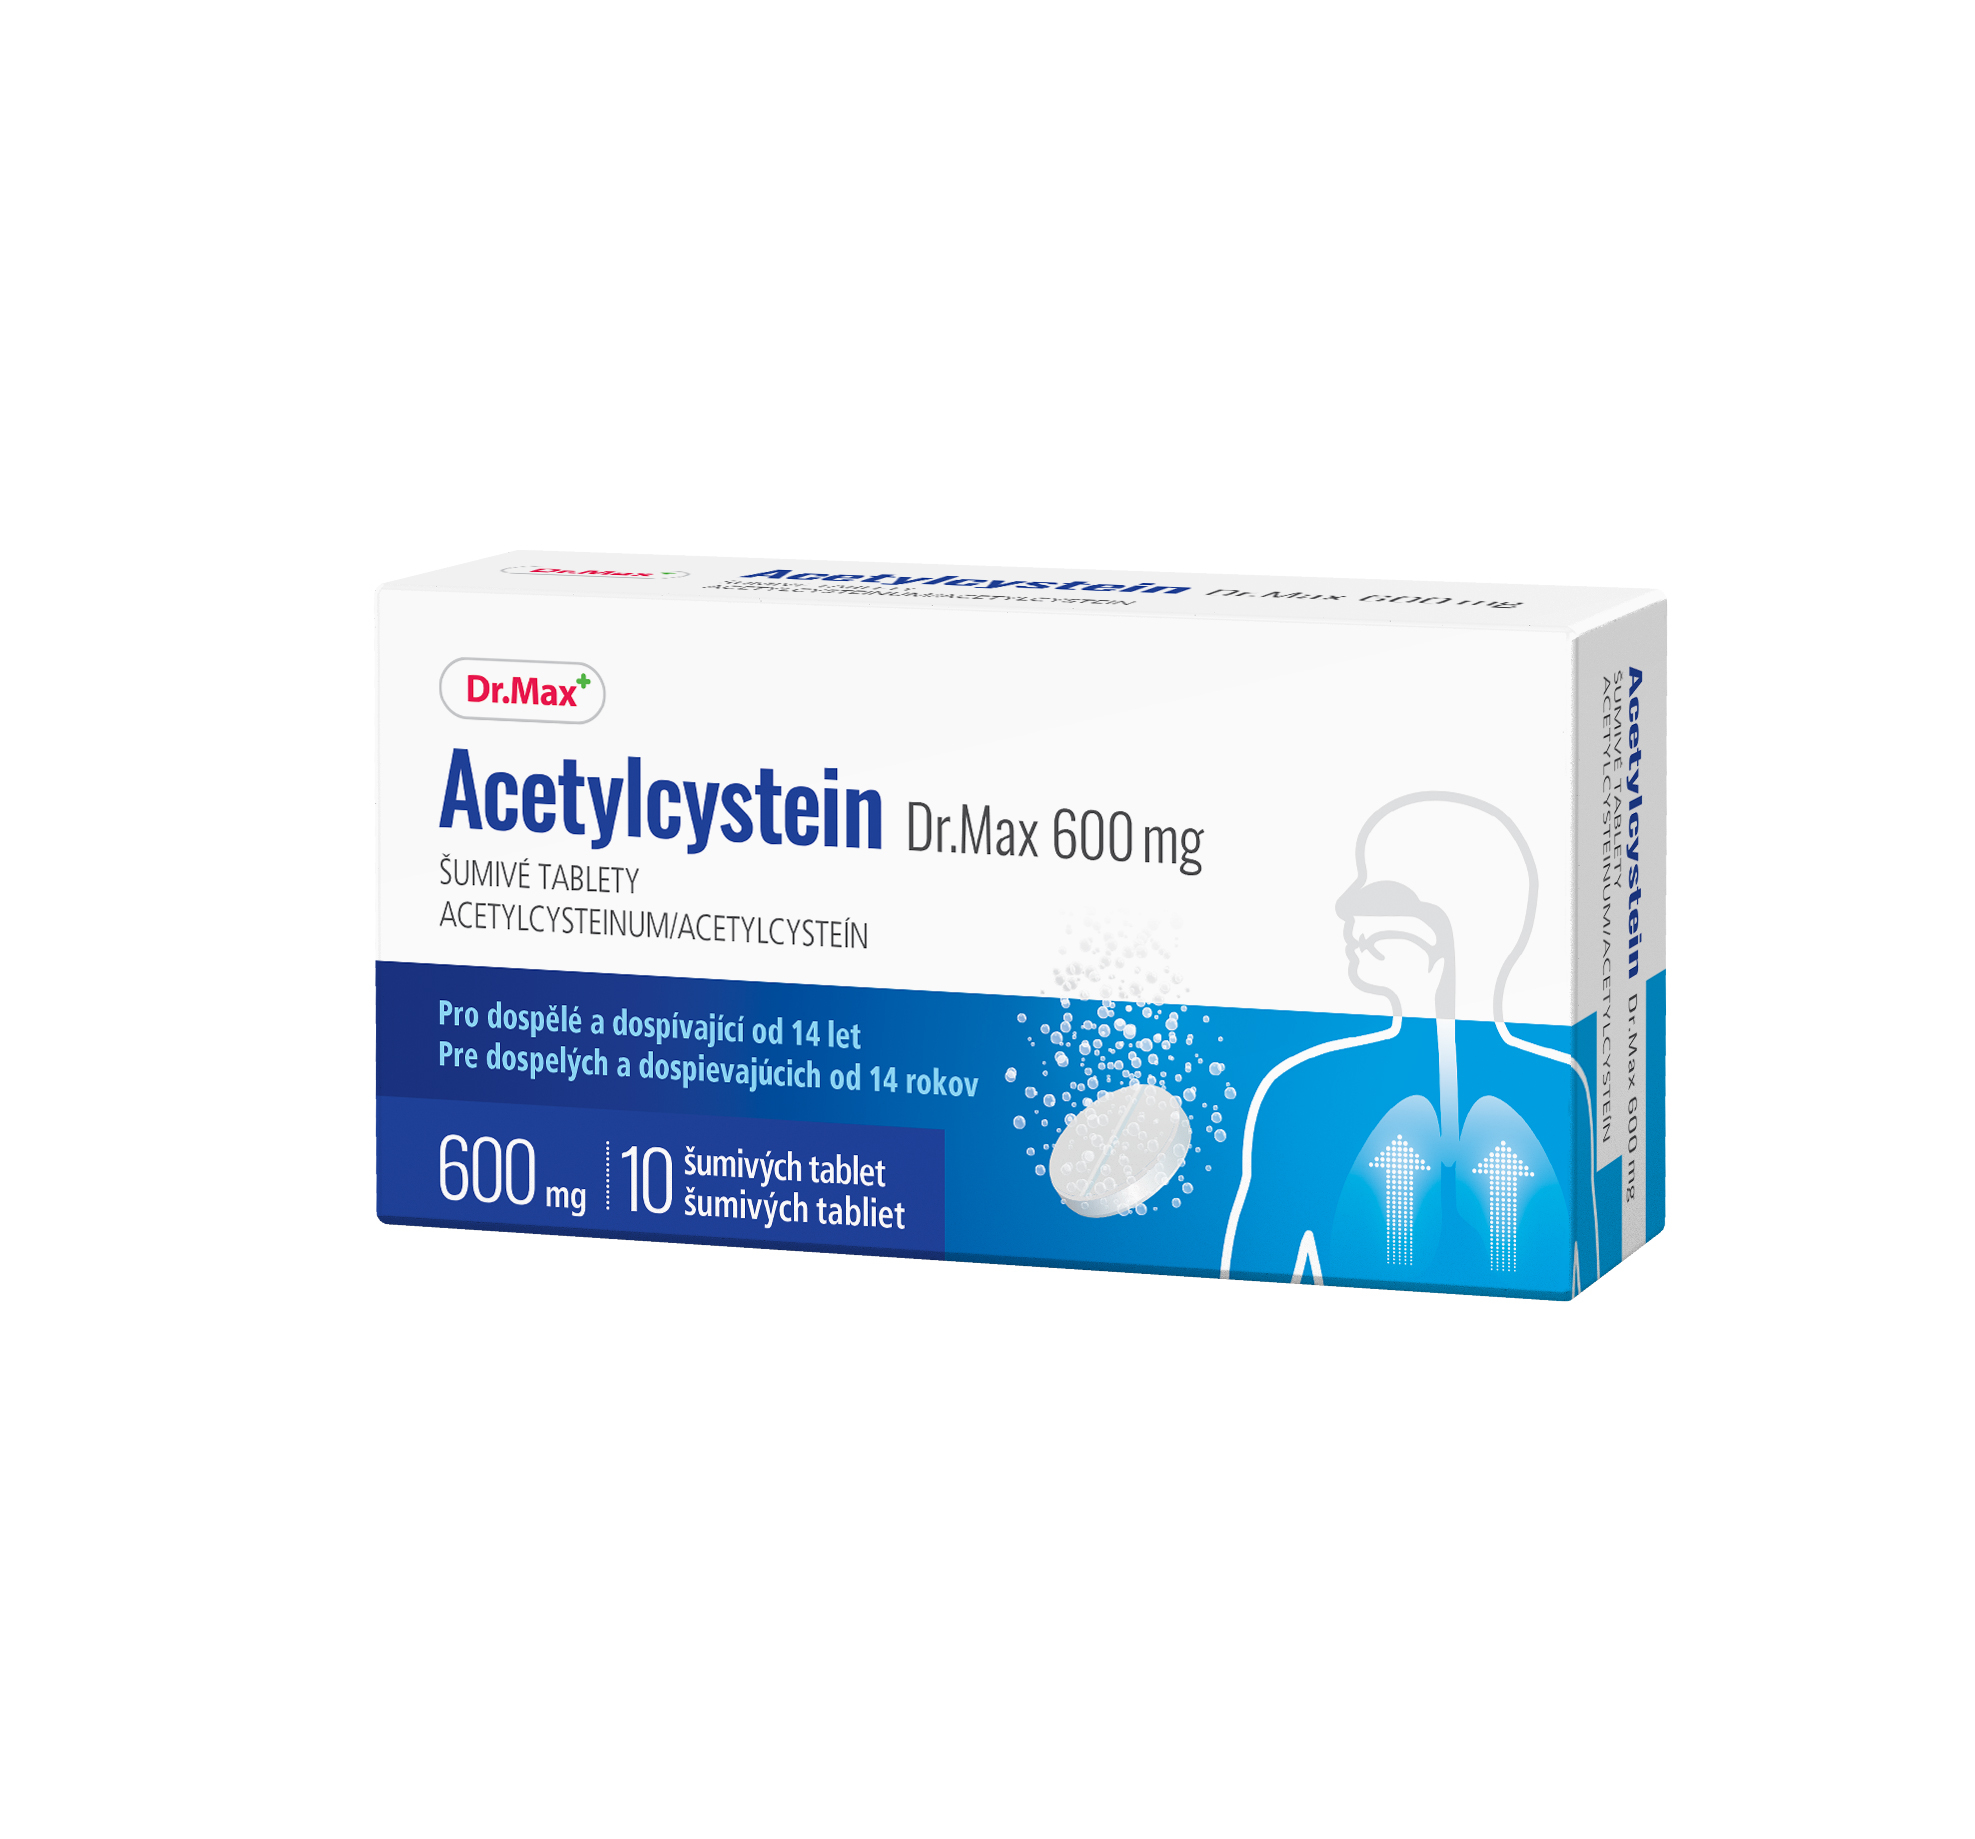 Dr.Max Acetylcystein 600 mg 10 šumivých tablet